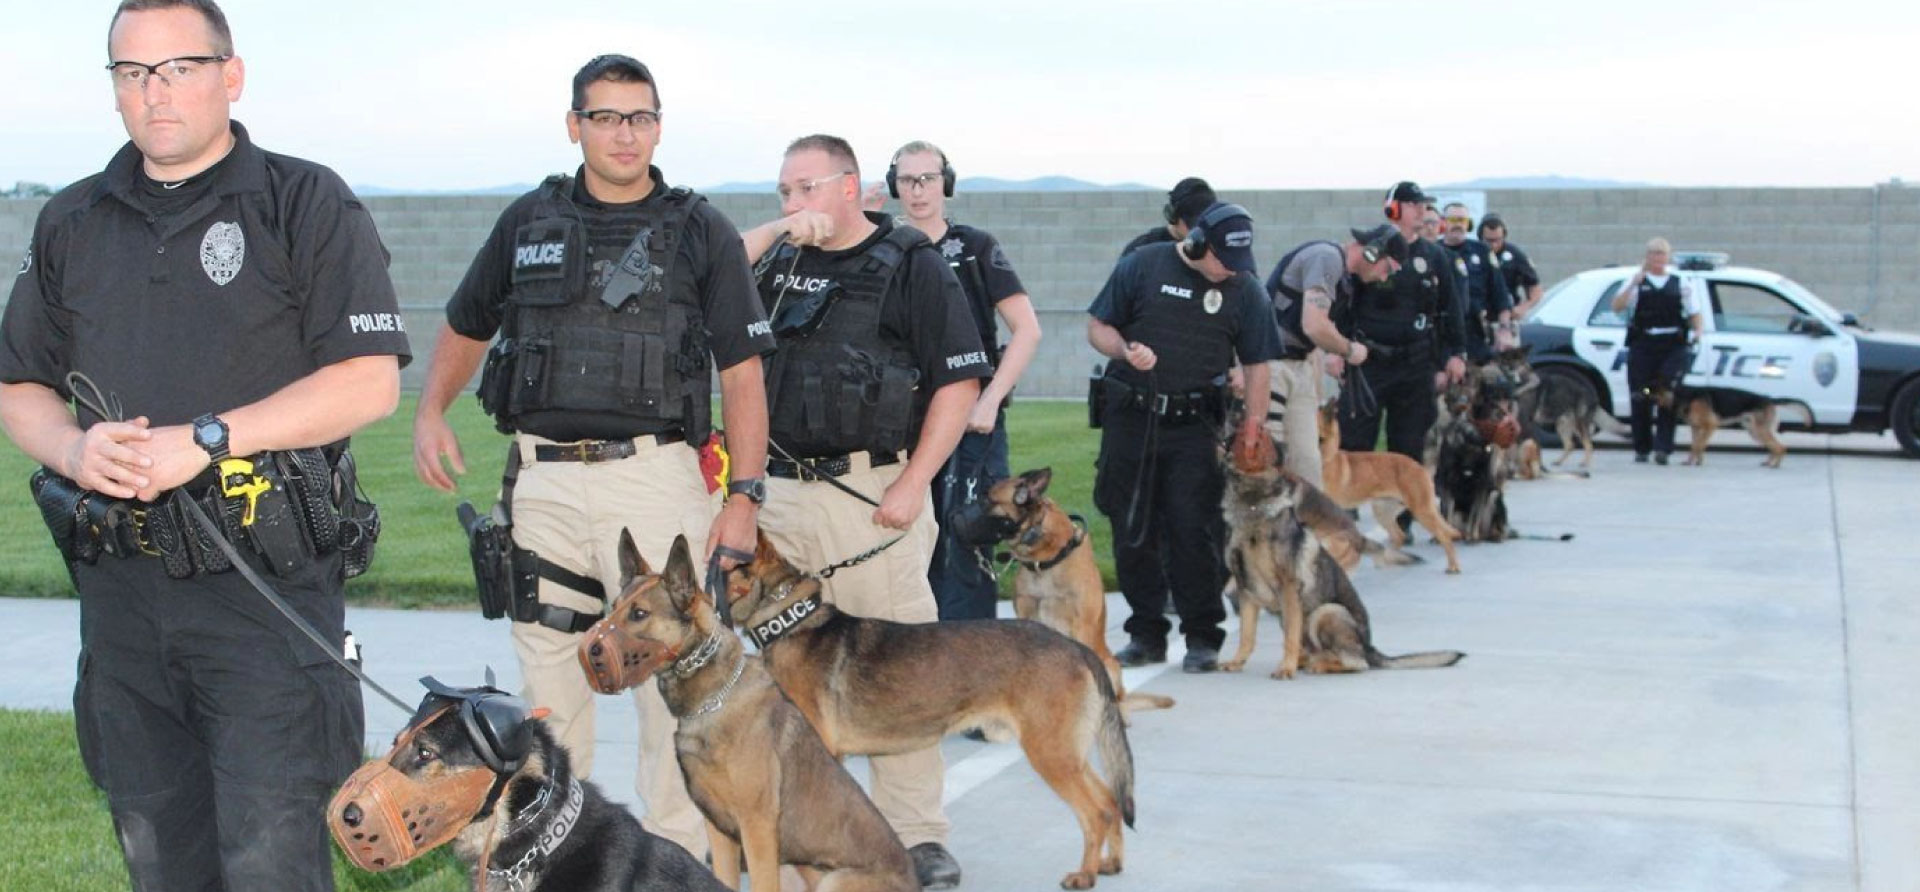 About K9 and Police Handler Training